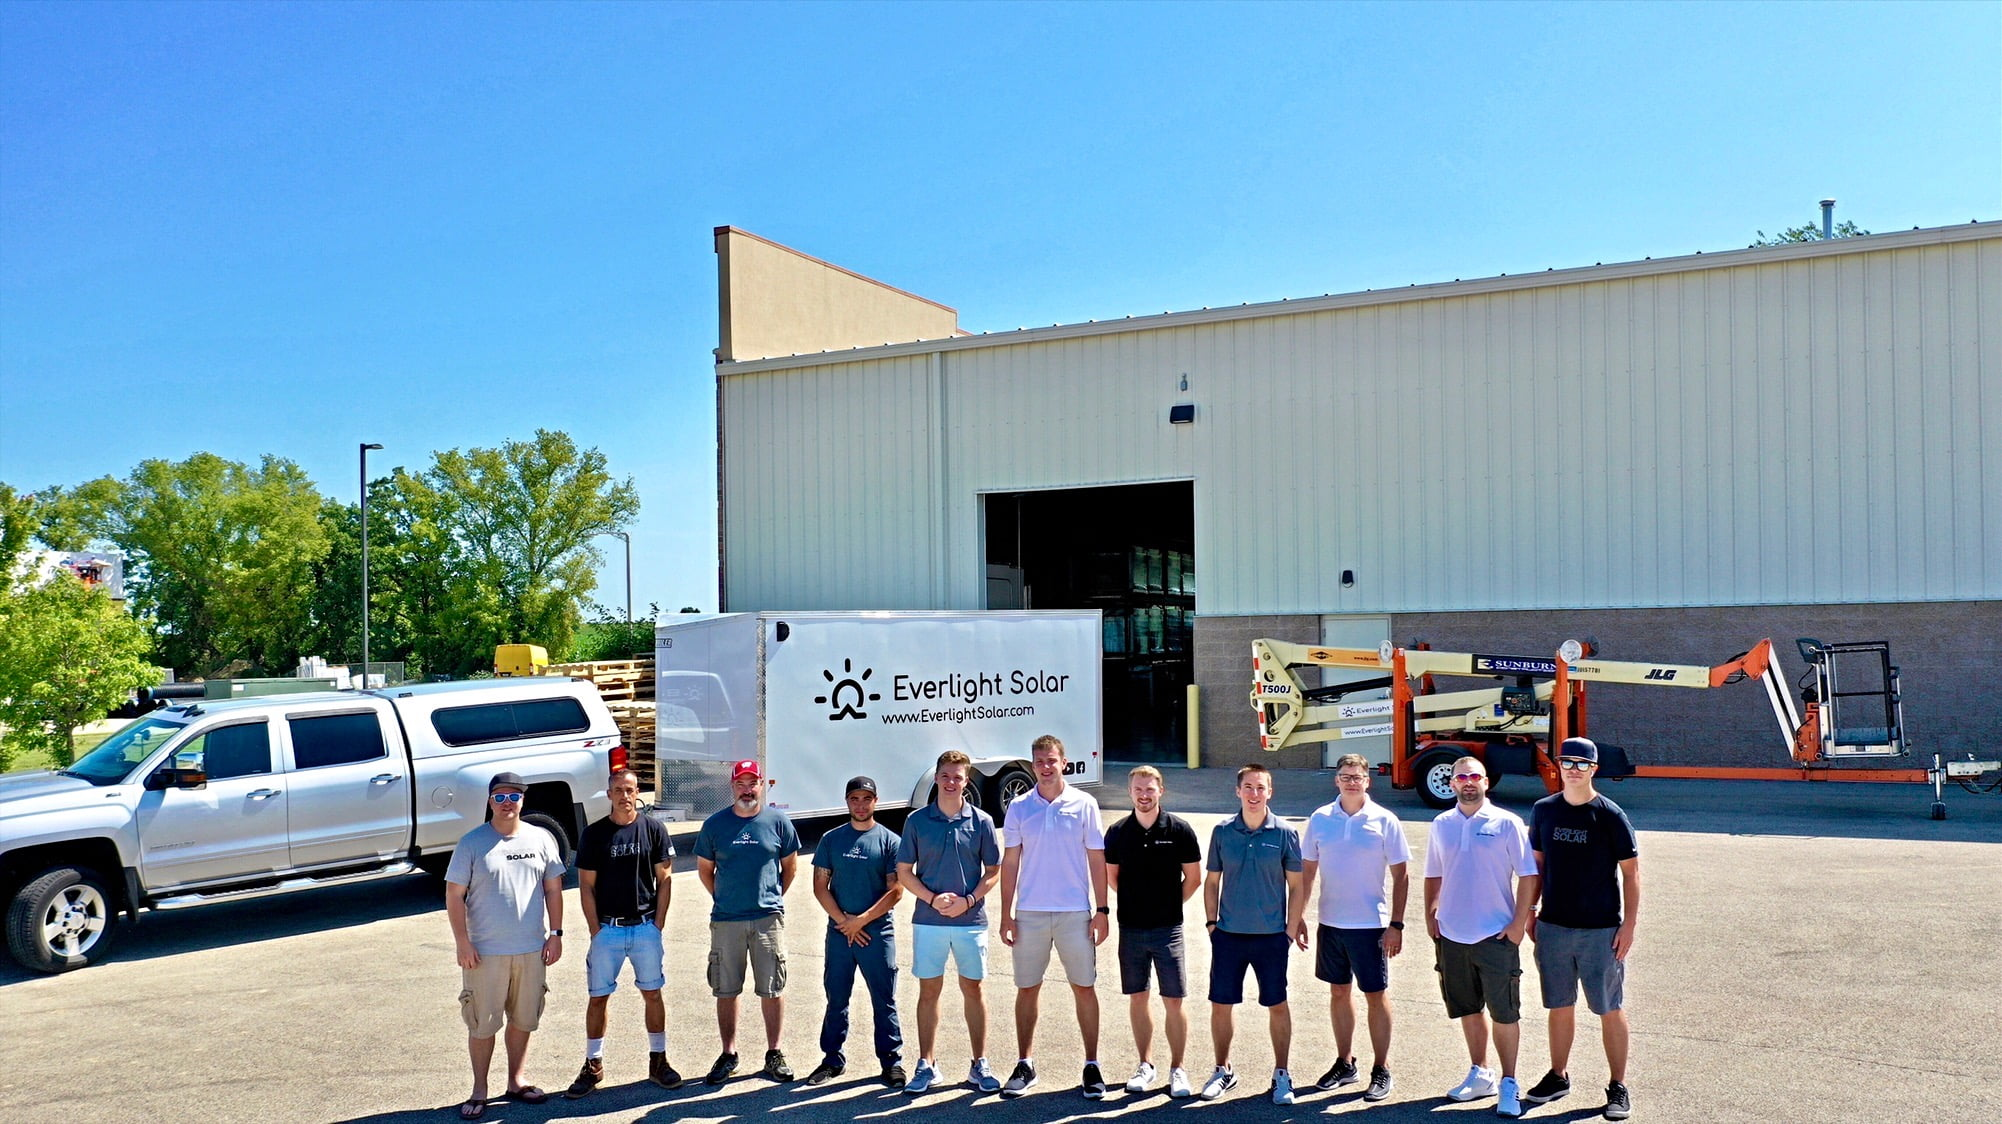 Everlight Solar is Bringing Clean-Energy Jobs to Madison